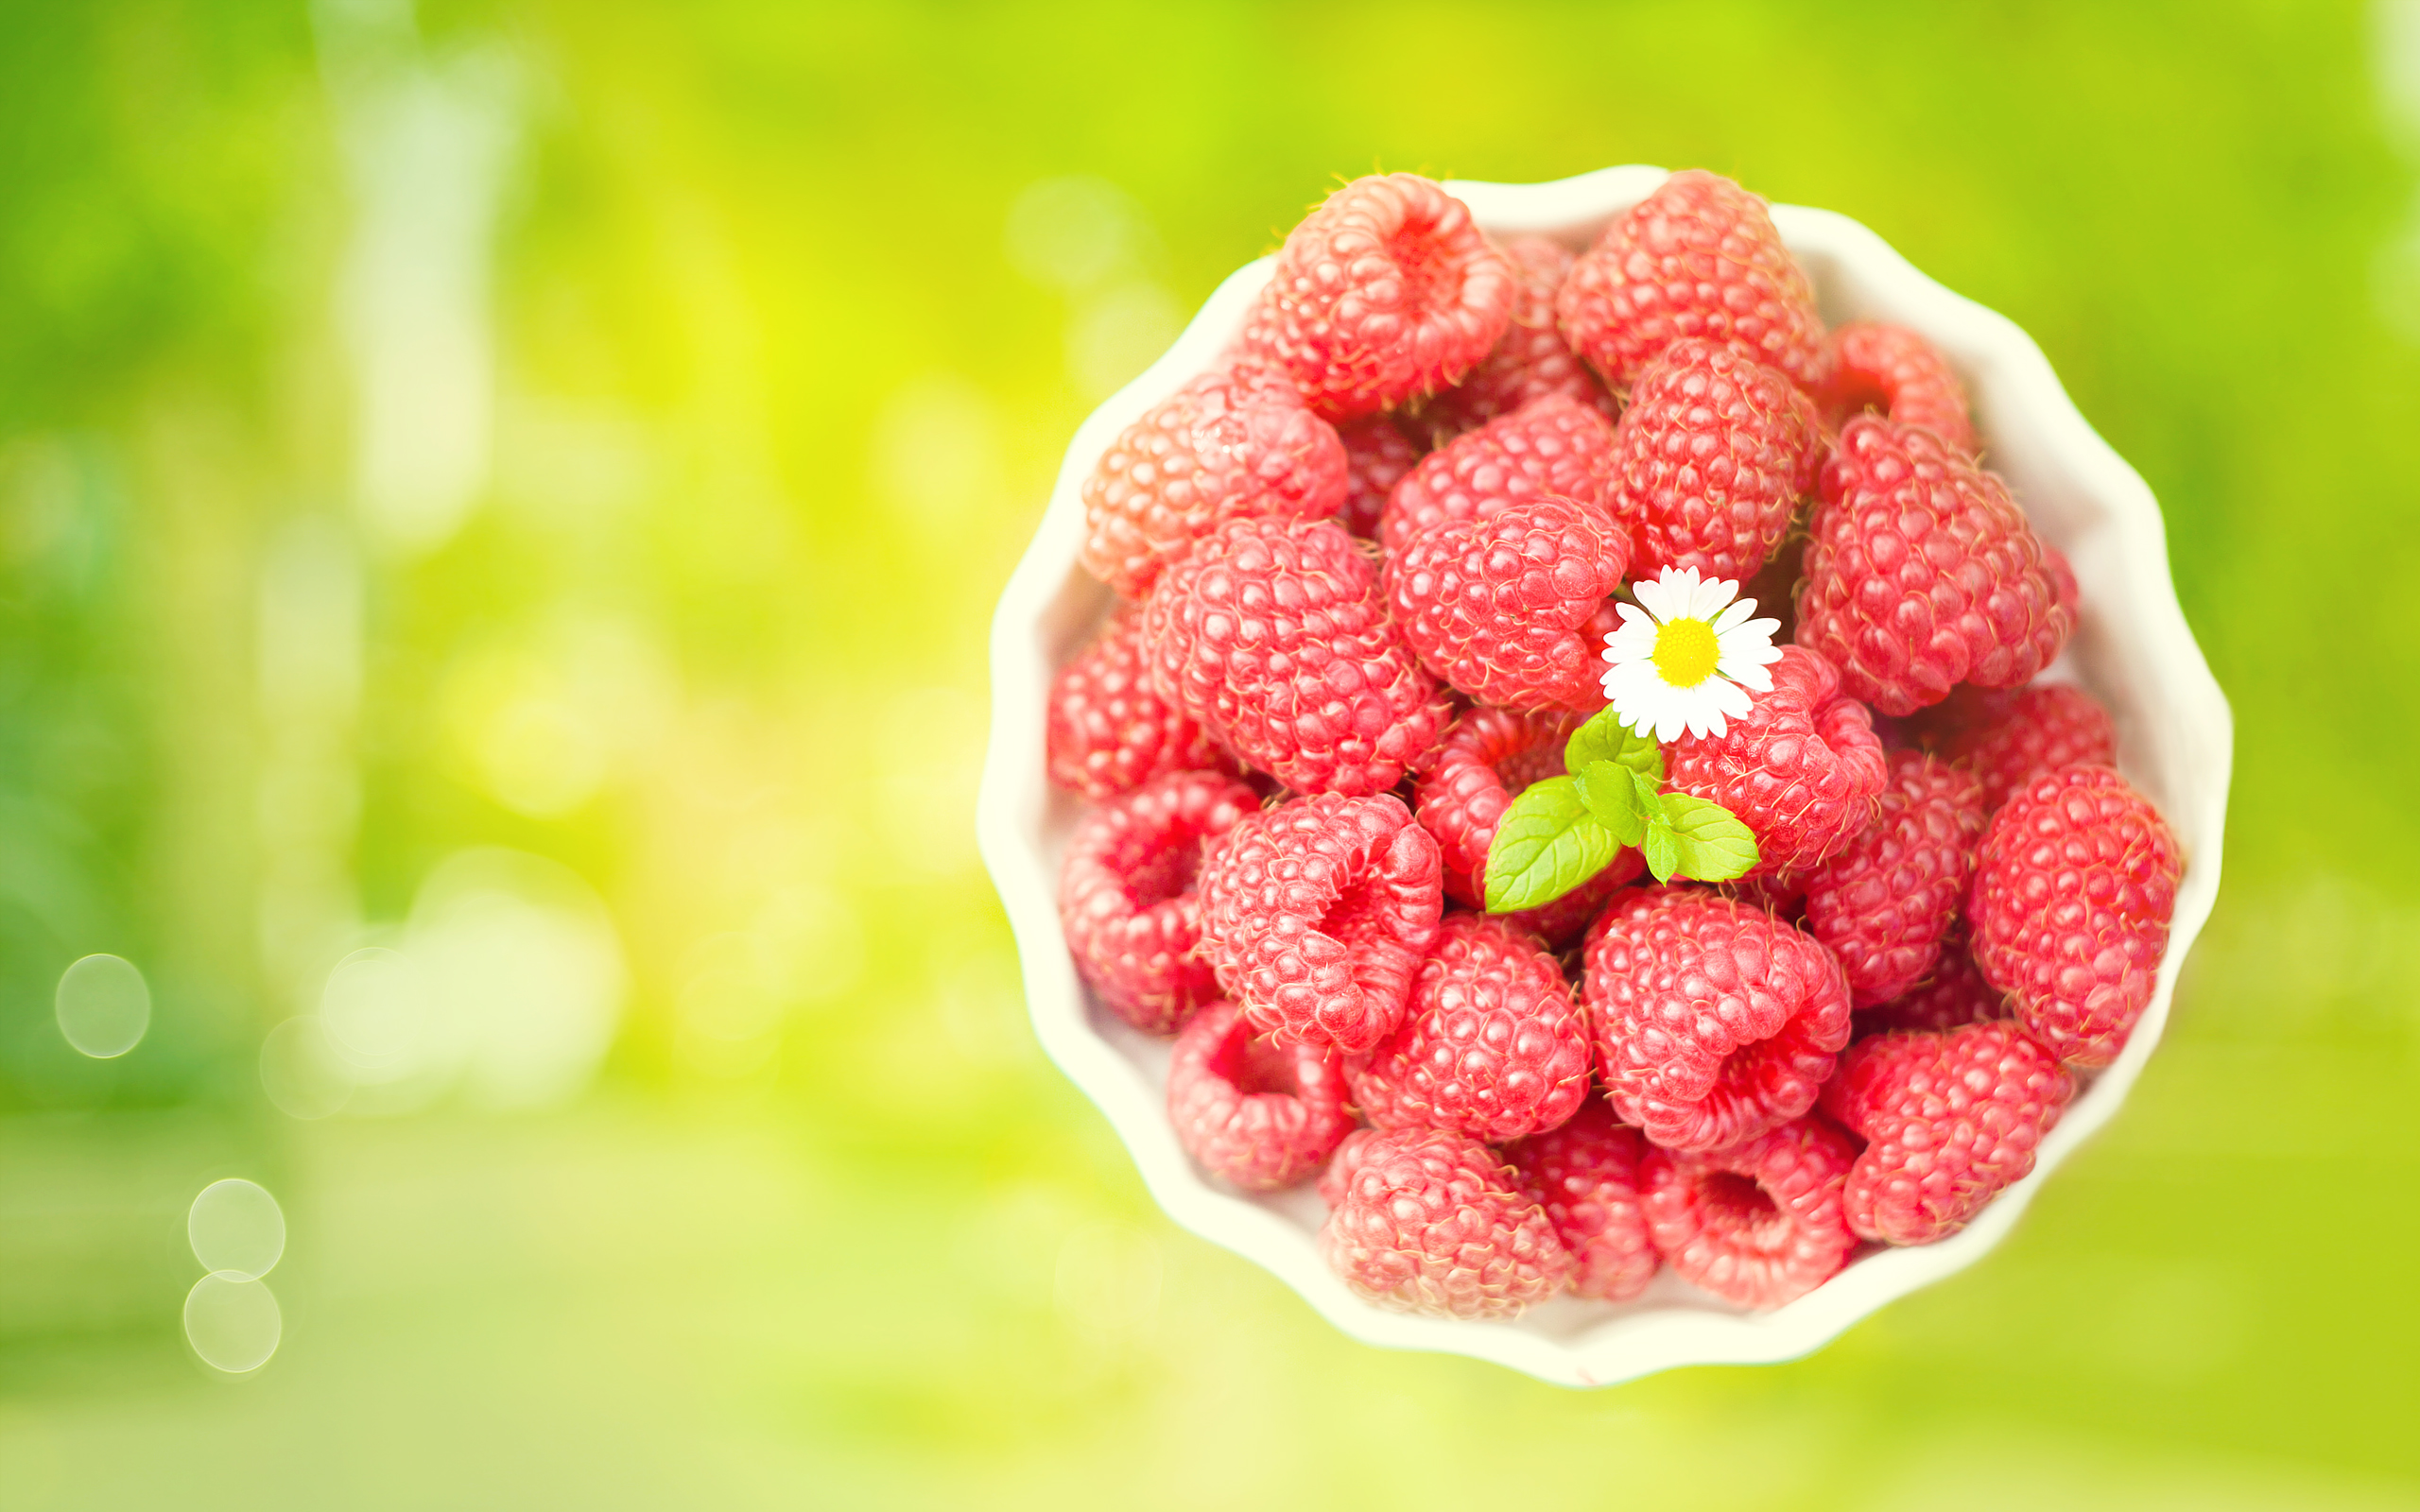 Raspberries 3017.41 Kb